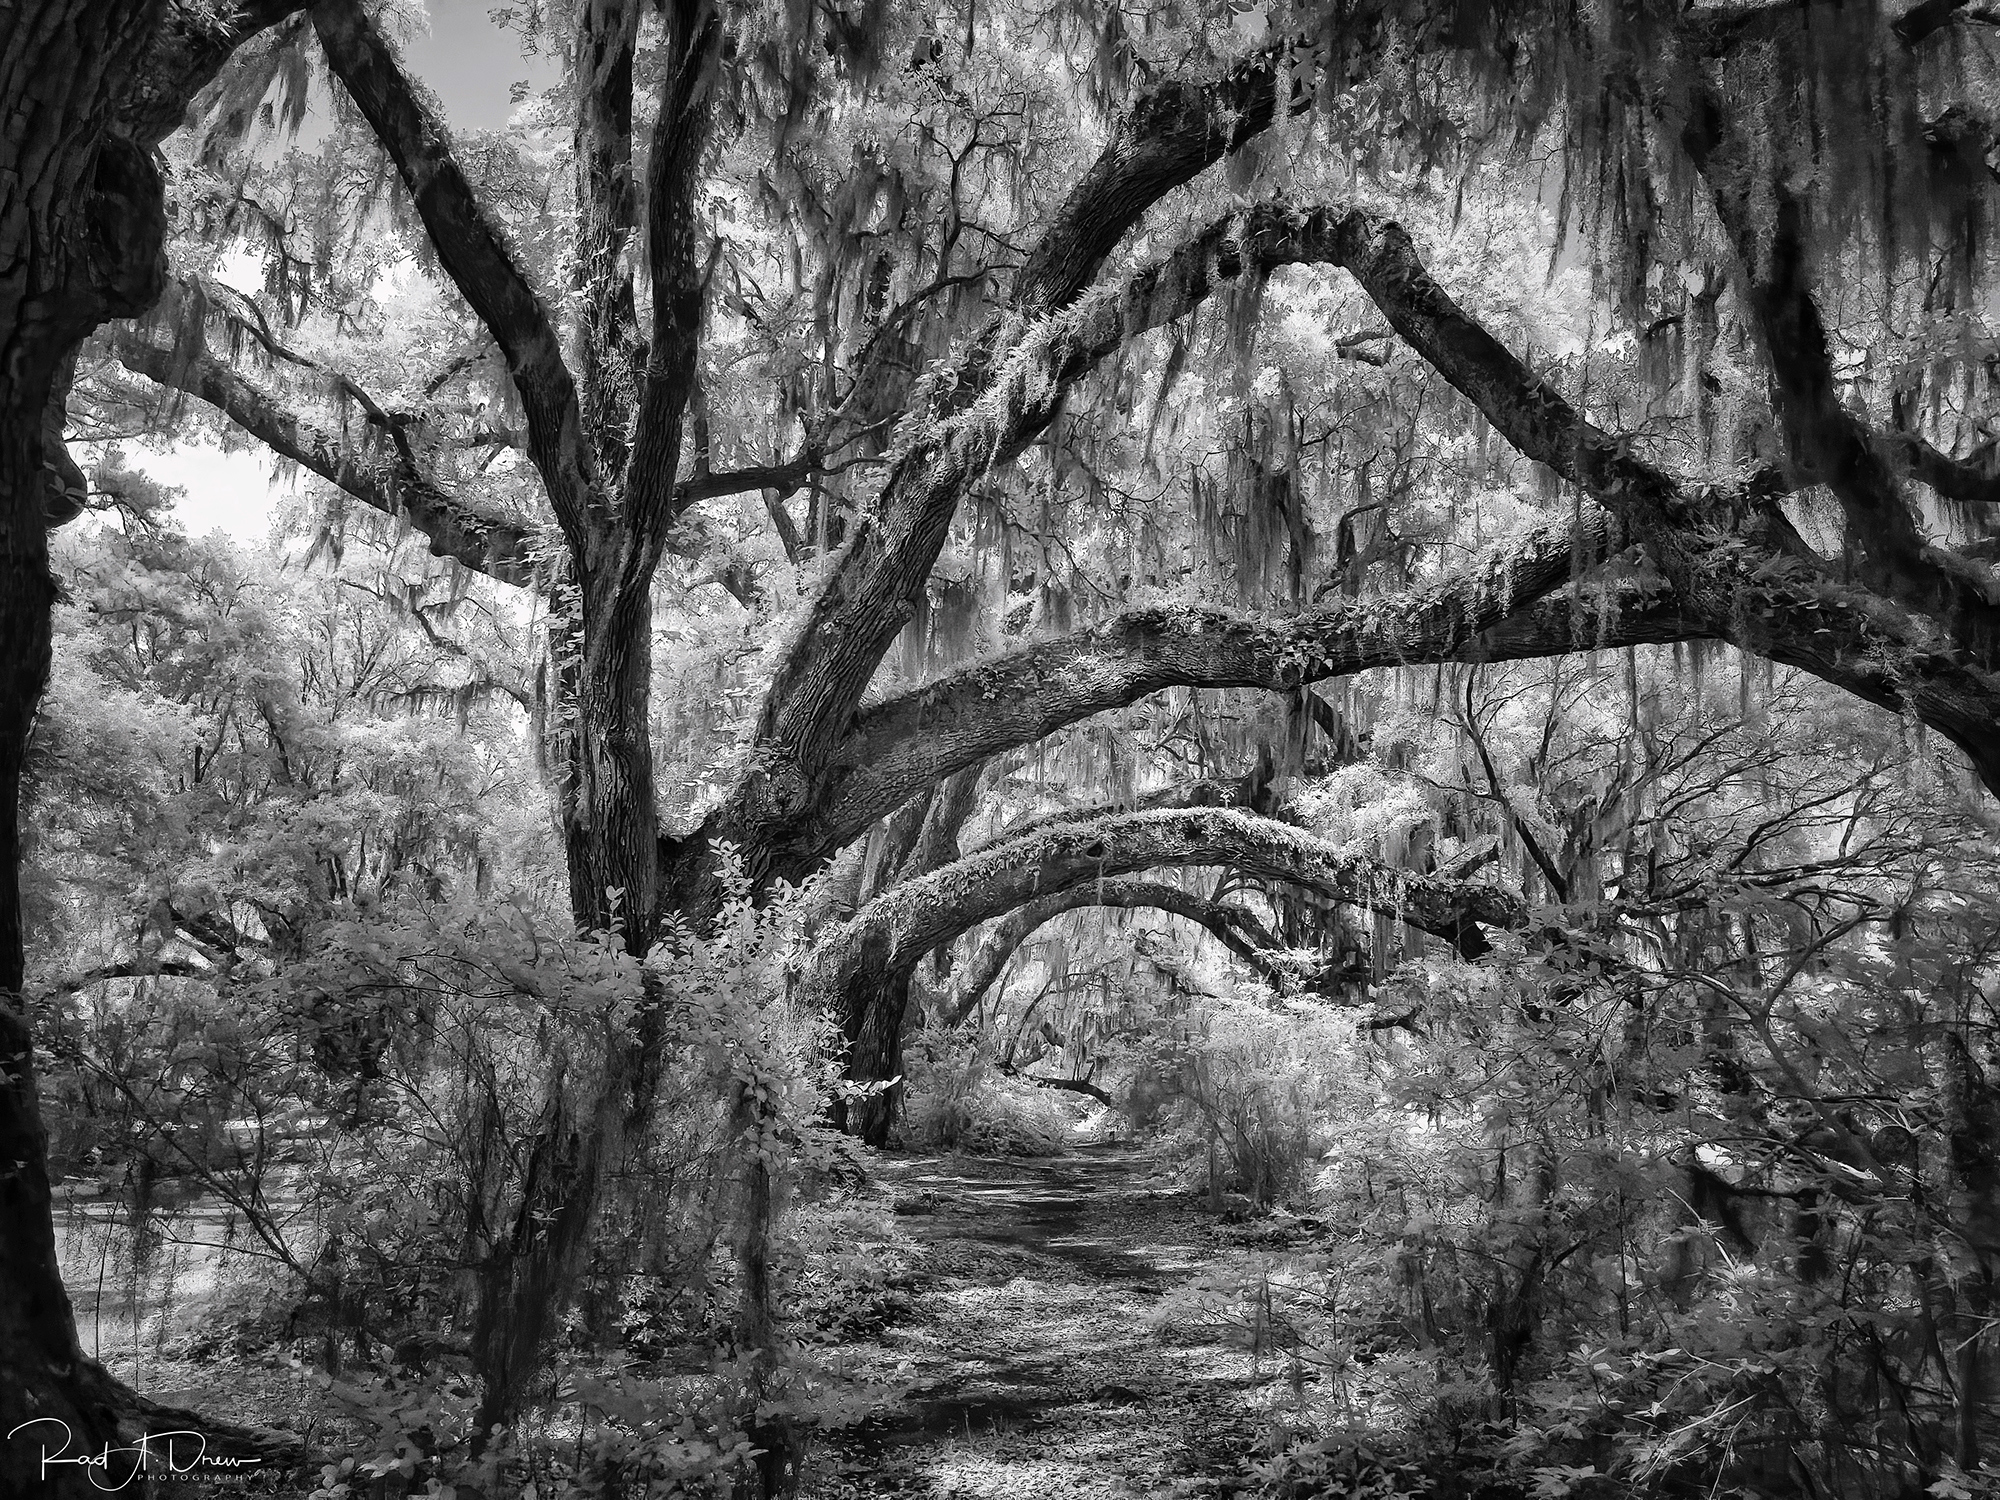 Created with the iPhone 12 Pro Max, Native Camera, ProRAW and Night Mode, processed on the desktop in Luminar 4 with plugins Topaz DeNoise AI, Sharpen AI, and Nik Silver Efex Pro 2